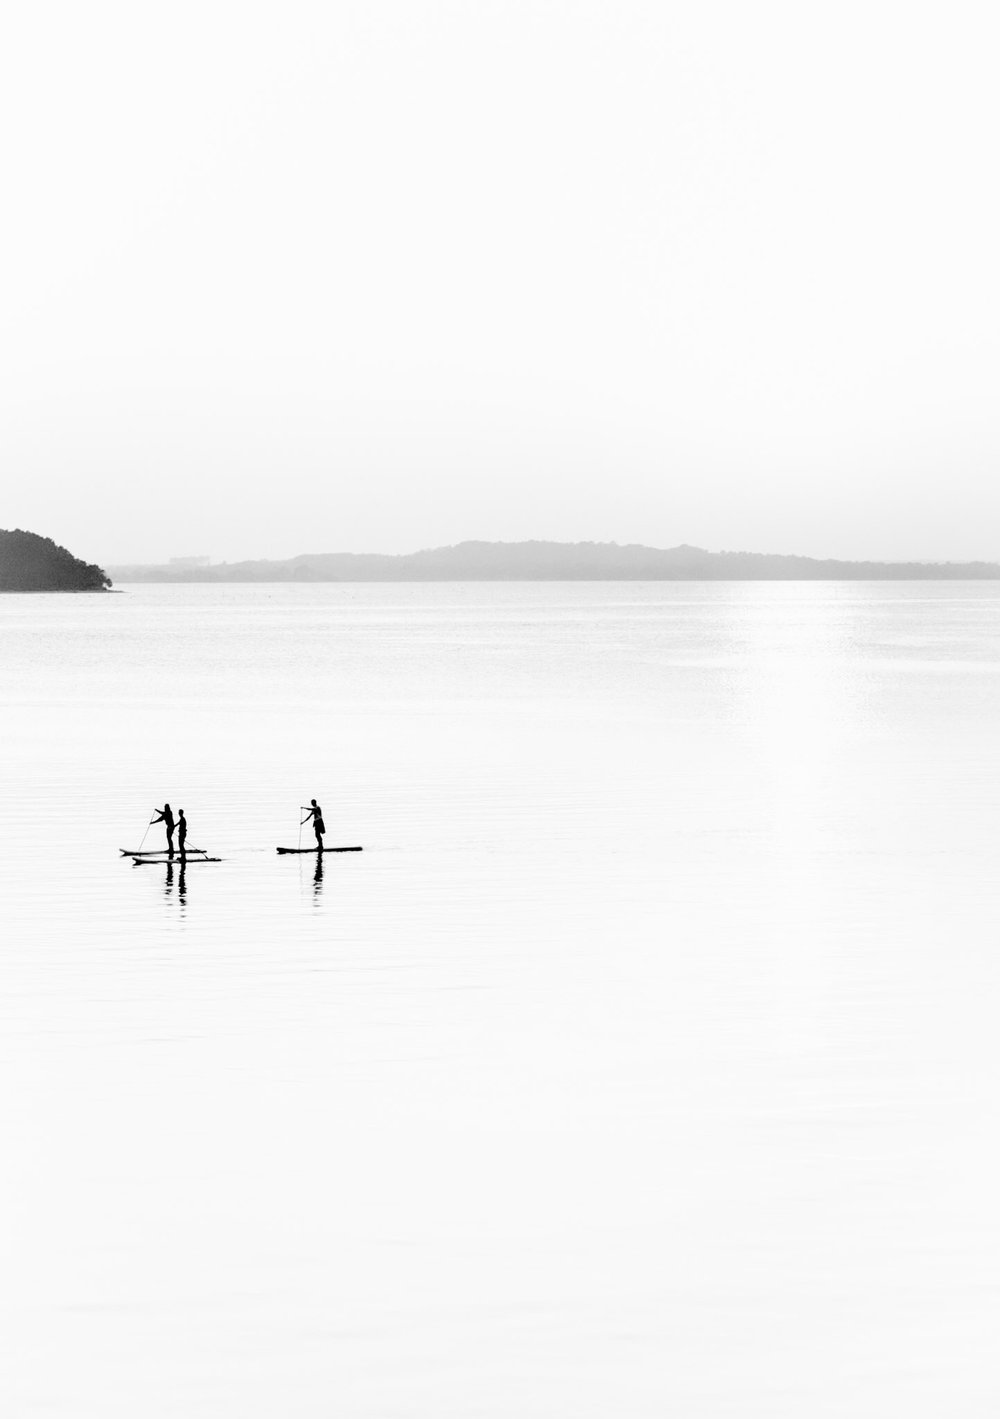 Picture of paddle boarders in Sandbanks. Poole